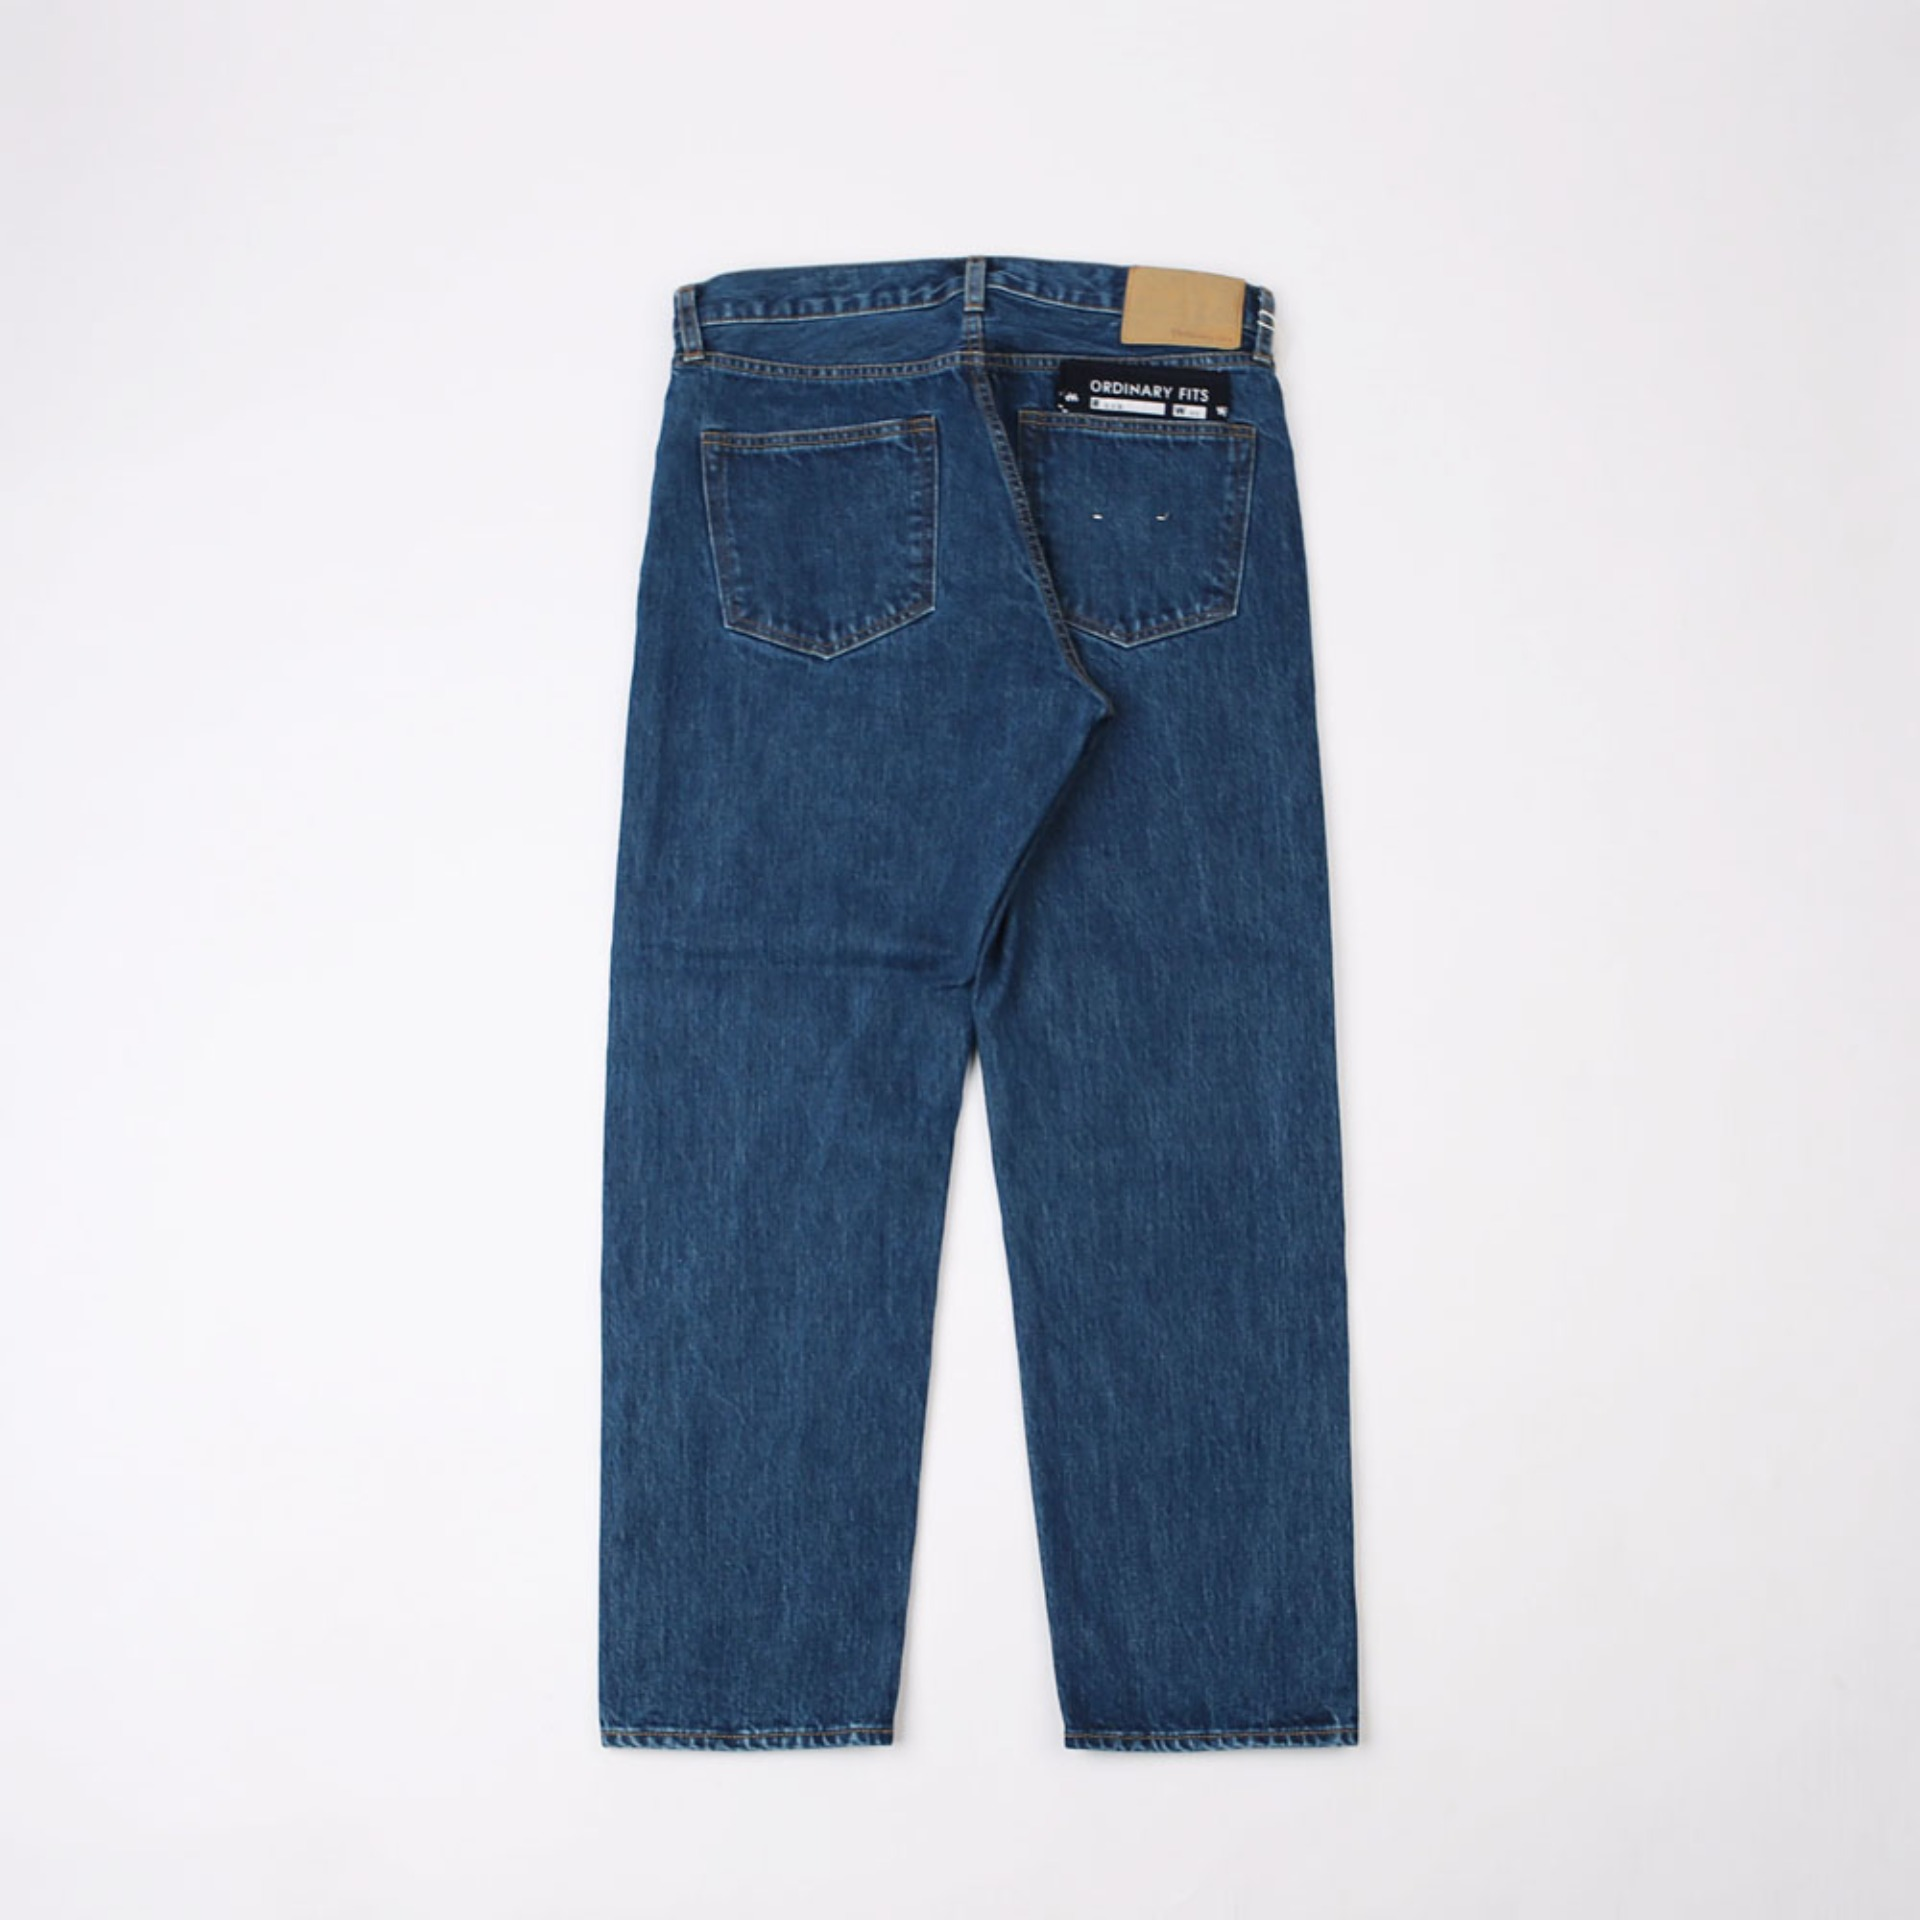 5 POCKET ANKLE DENIM PANTS - Kodama